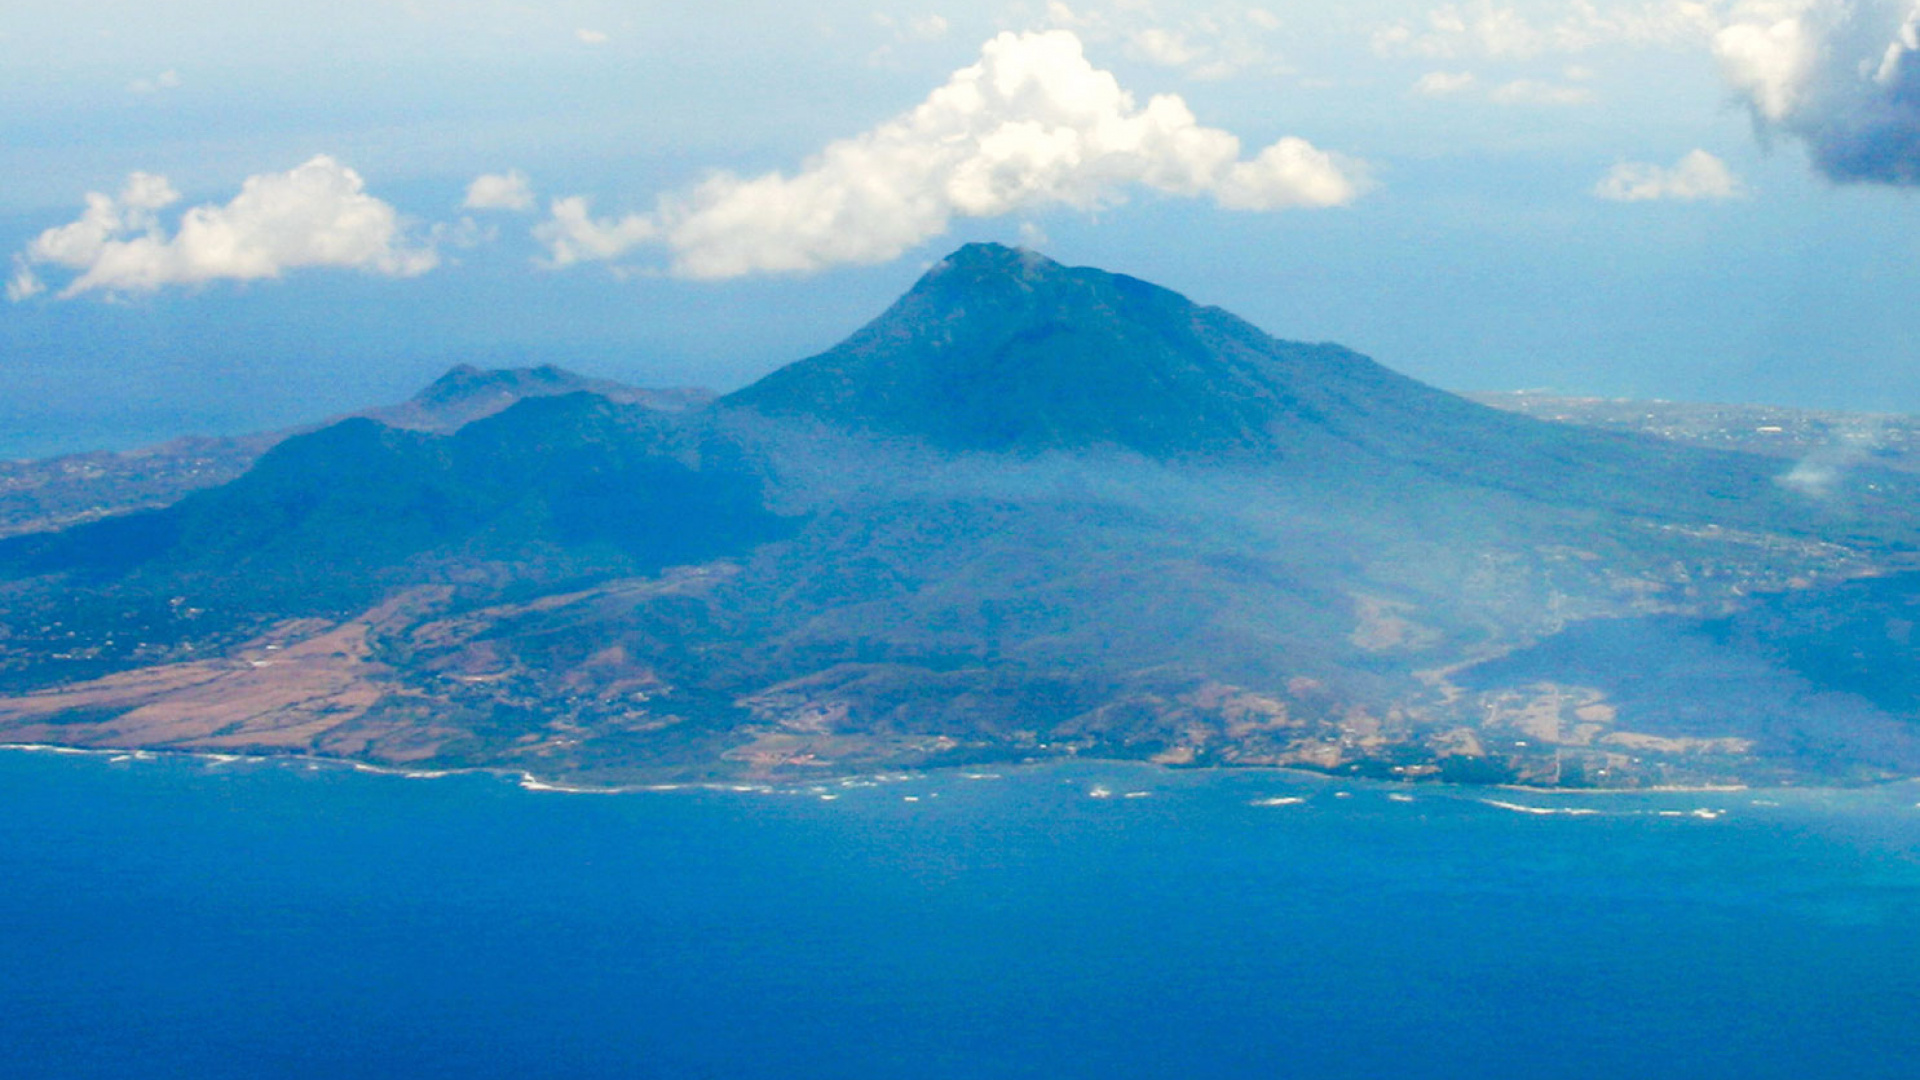 The beautiful Nevis island in the Caribbean